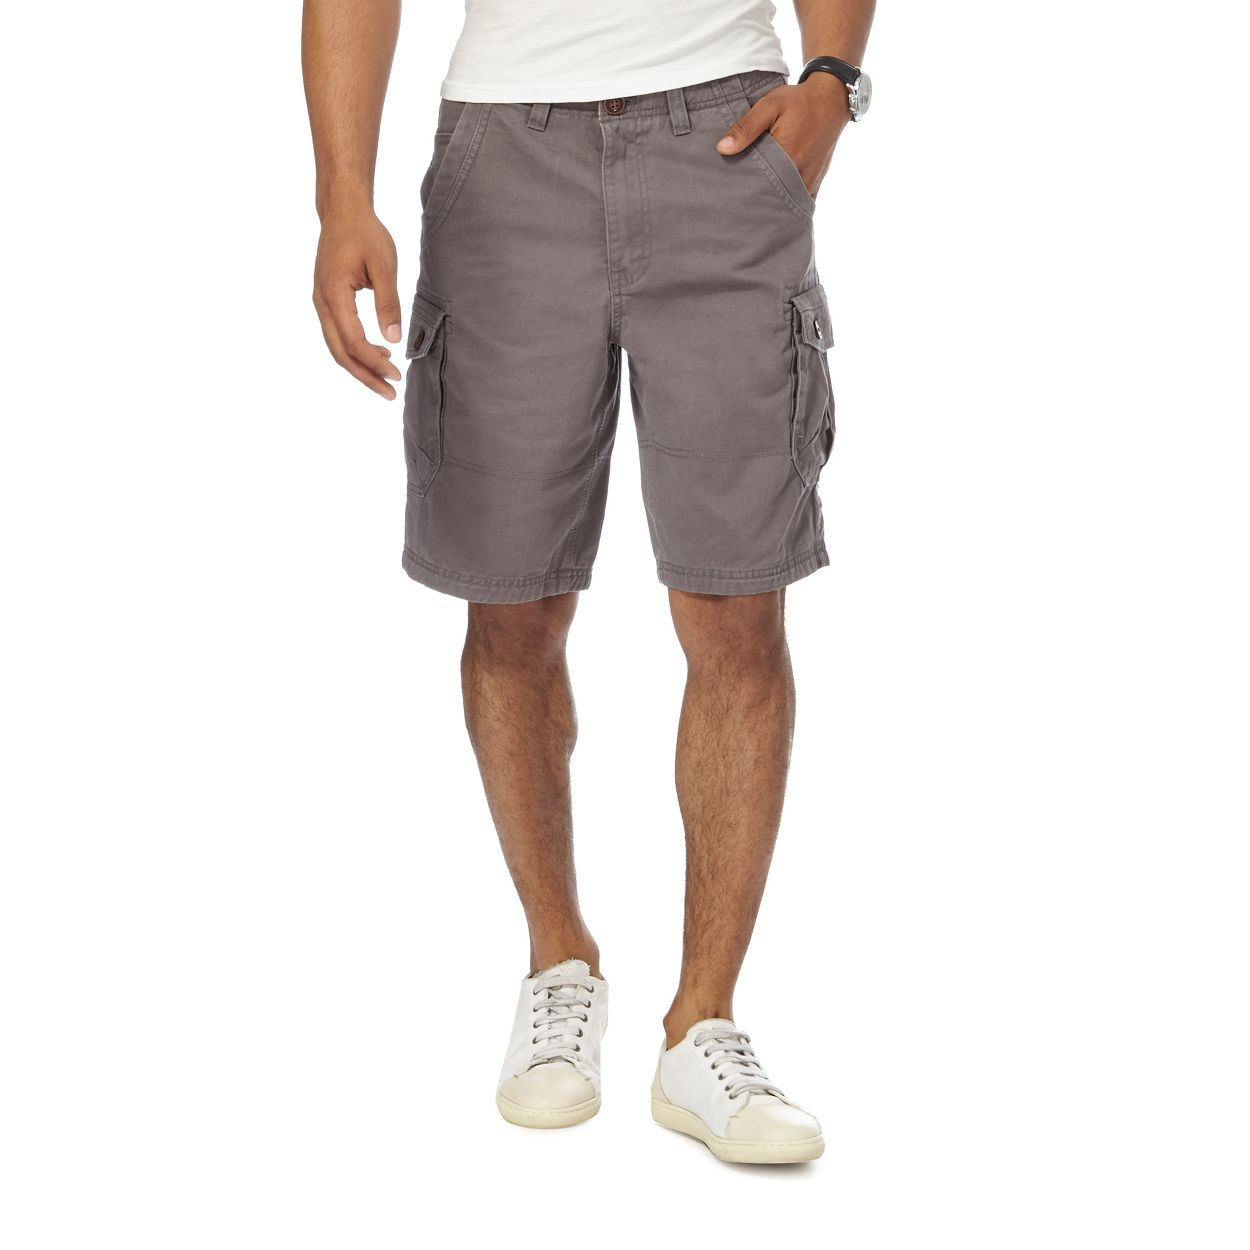 Mantaray Dark Grey Dark grey cargo shorts